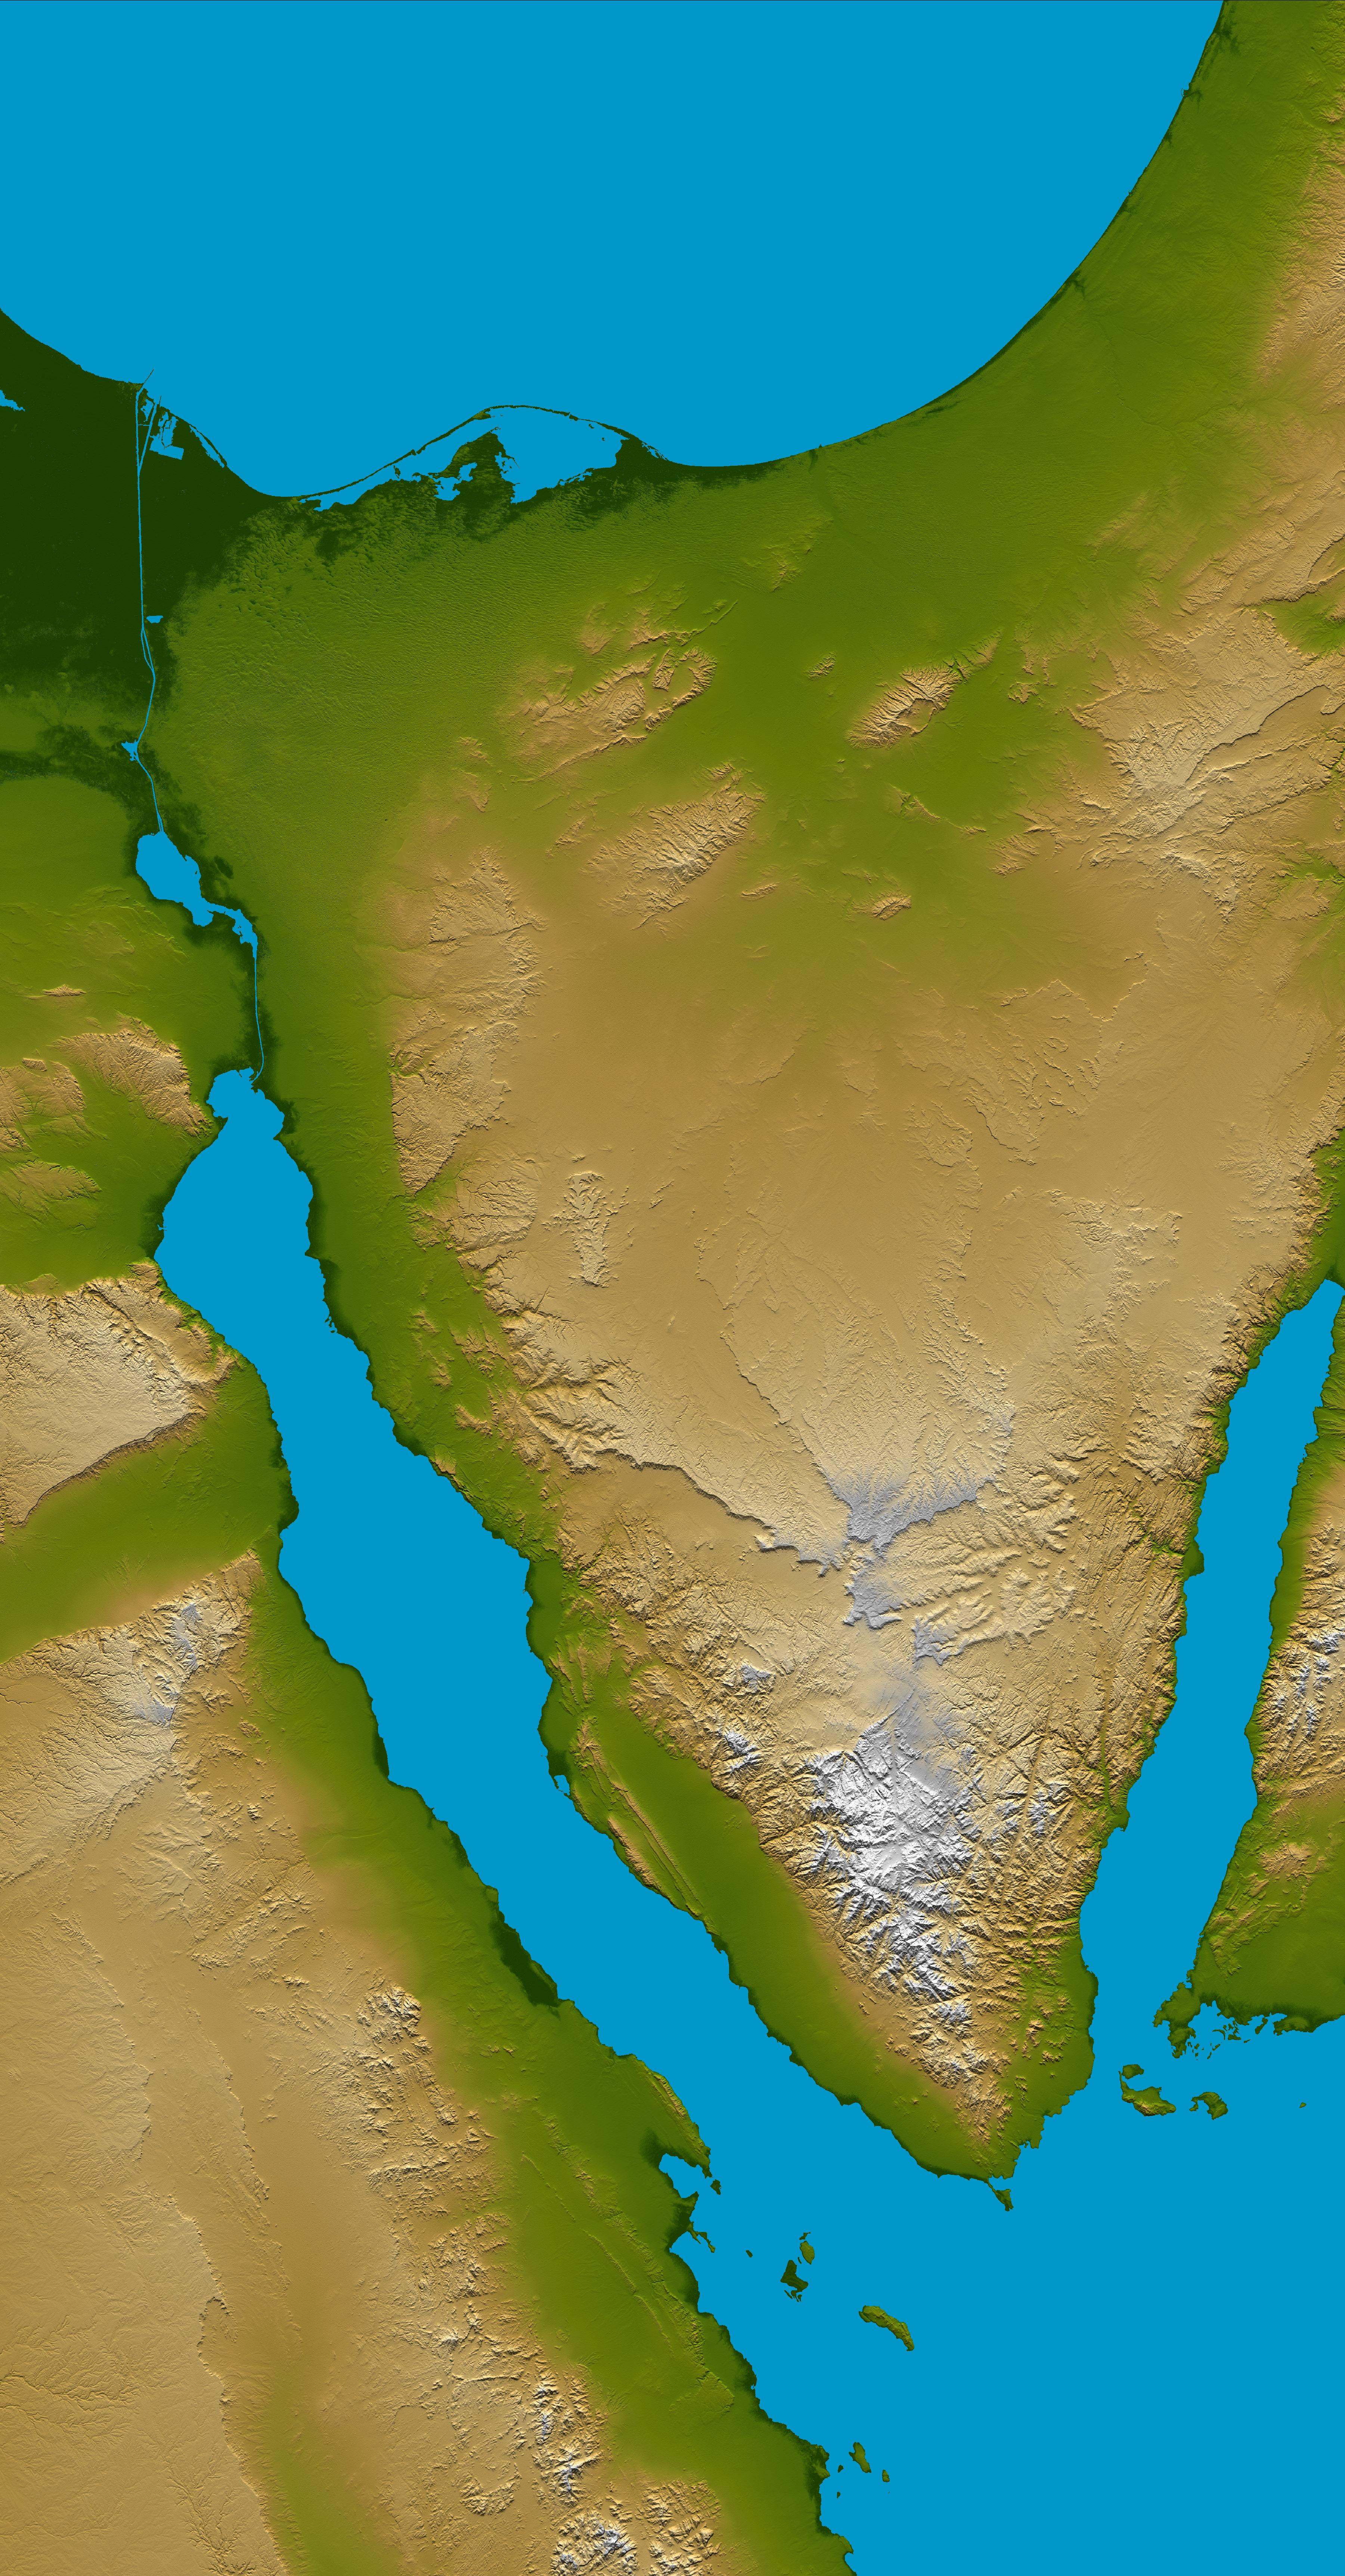 Space images sinai peninsula shaded relief and colored height image details gumiabroncs Image collections